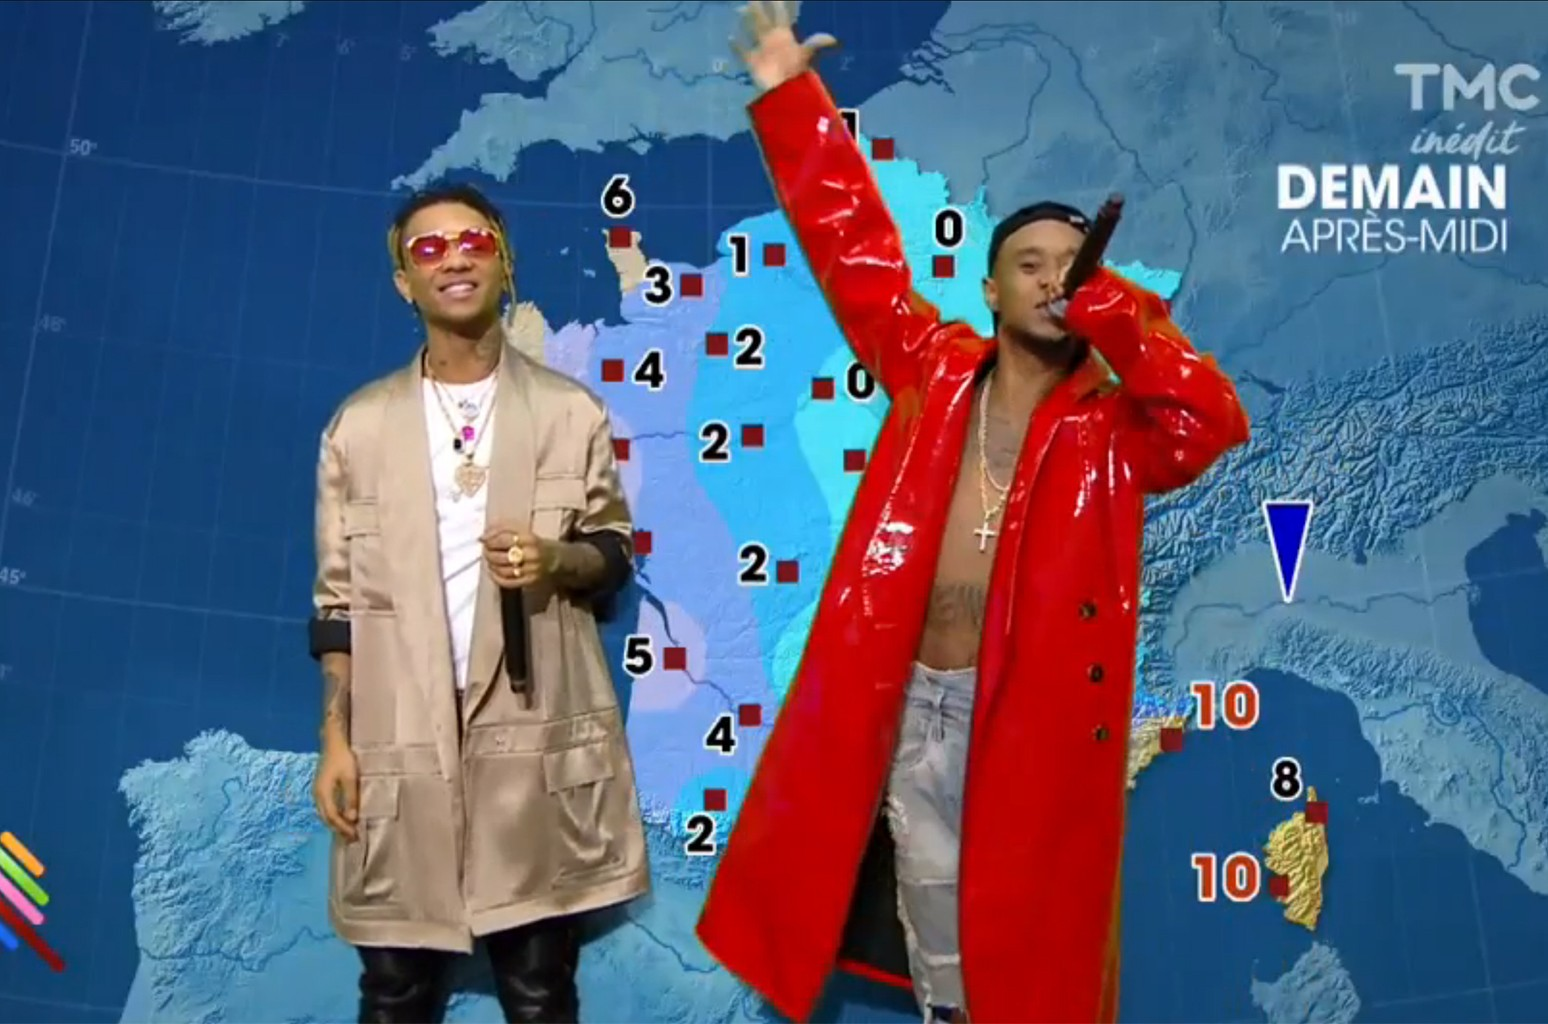 Rae Sremmurd give the weather report on TMC.